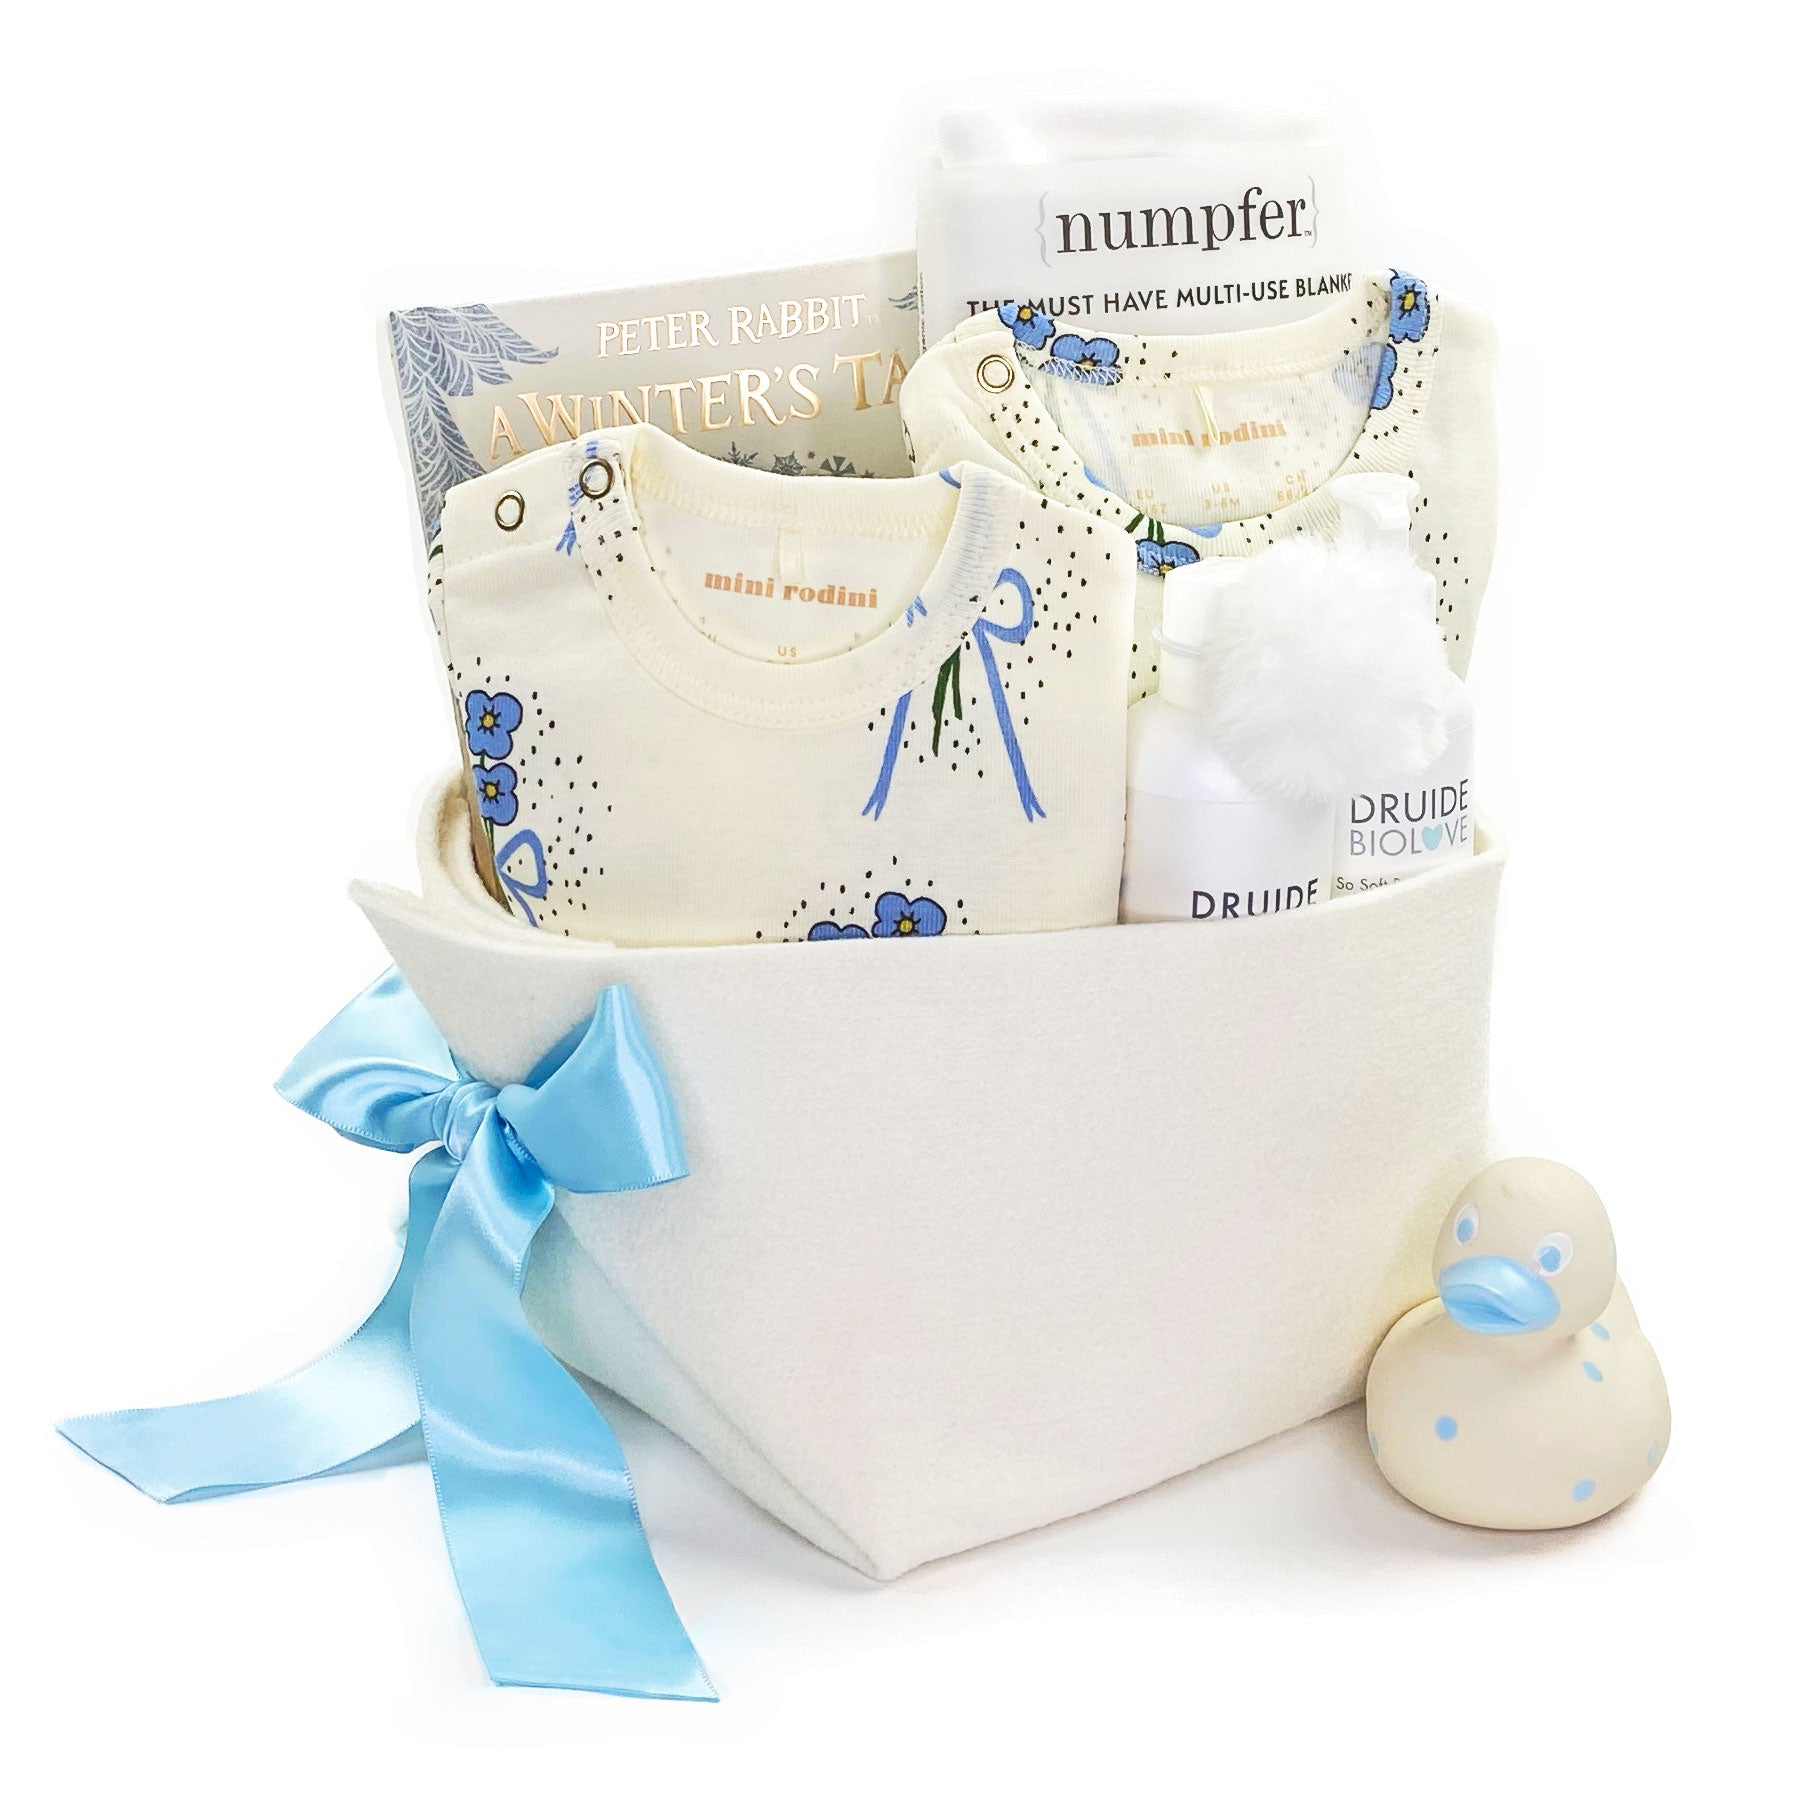 Mini Rodini Luxury Baby Gifts at Bonjour Baby Baskets